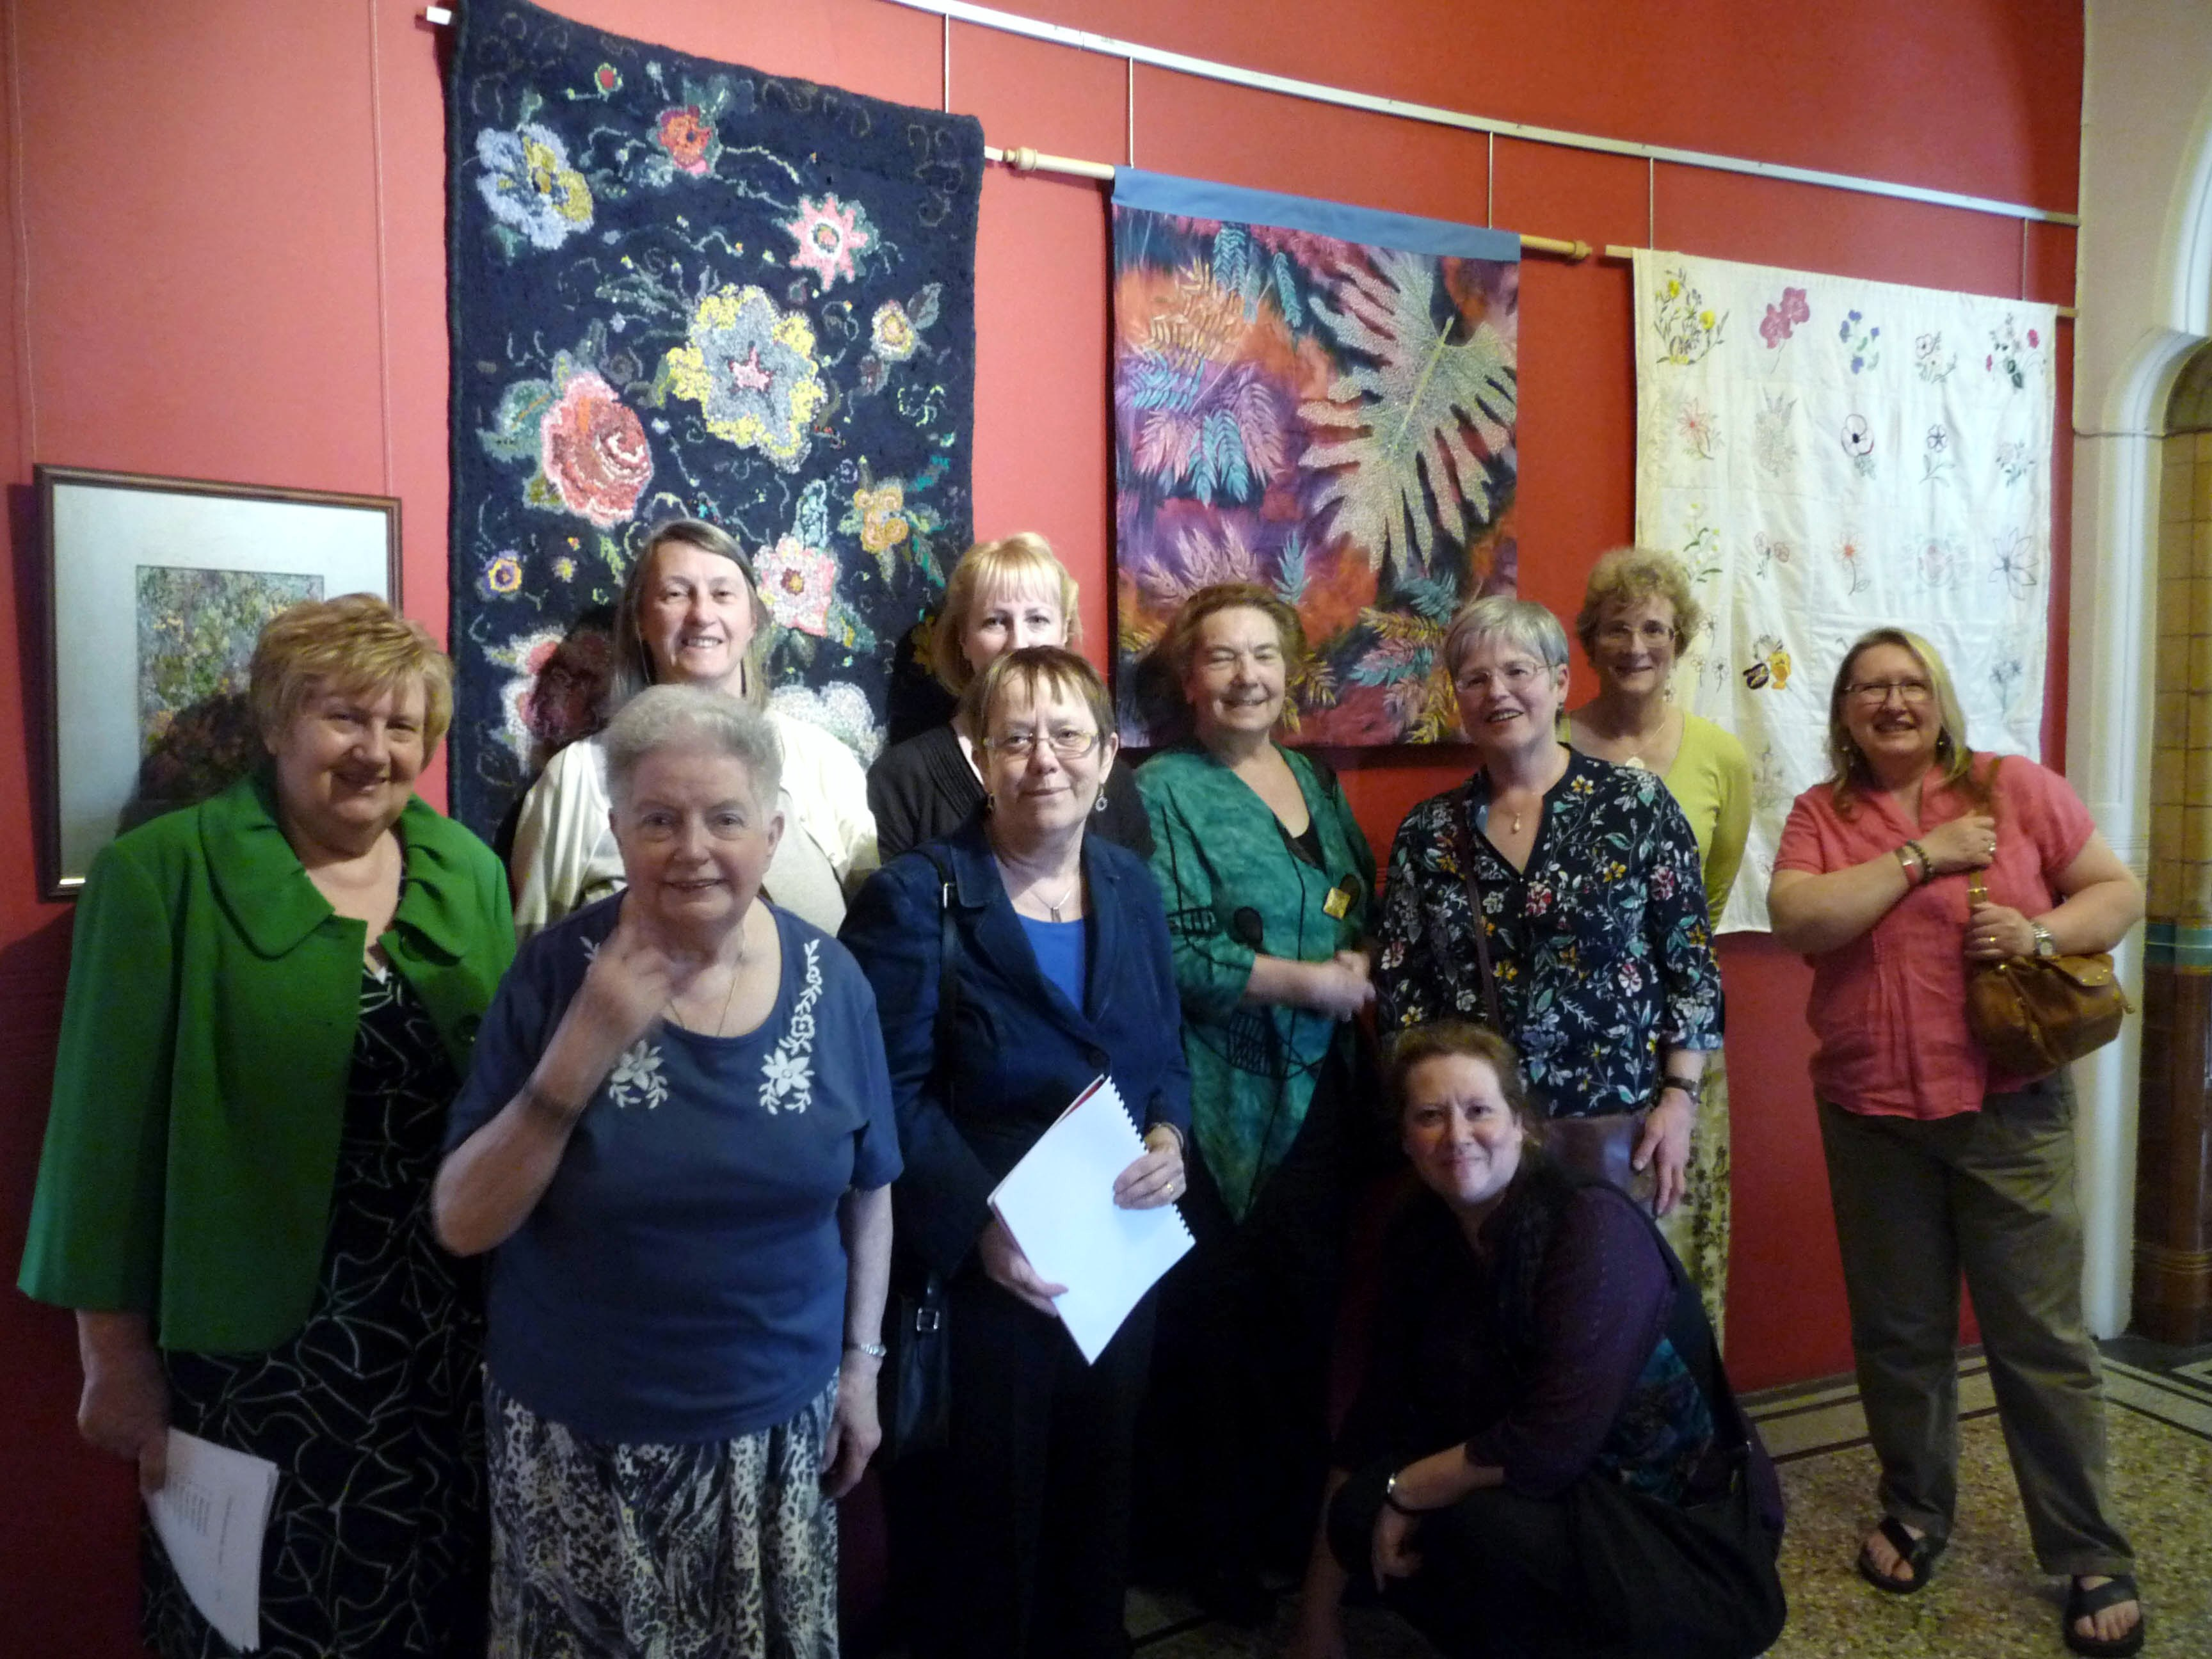 some MEG textile artists at 'Meet the Artists' day, Victoria Gallery, 2014